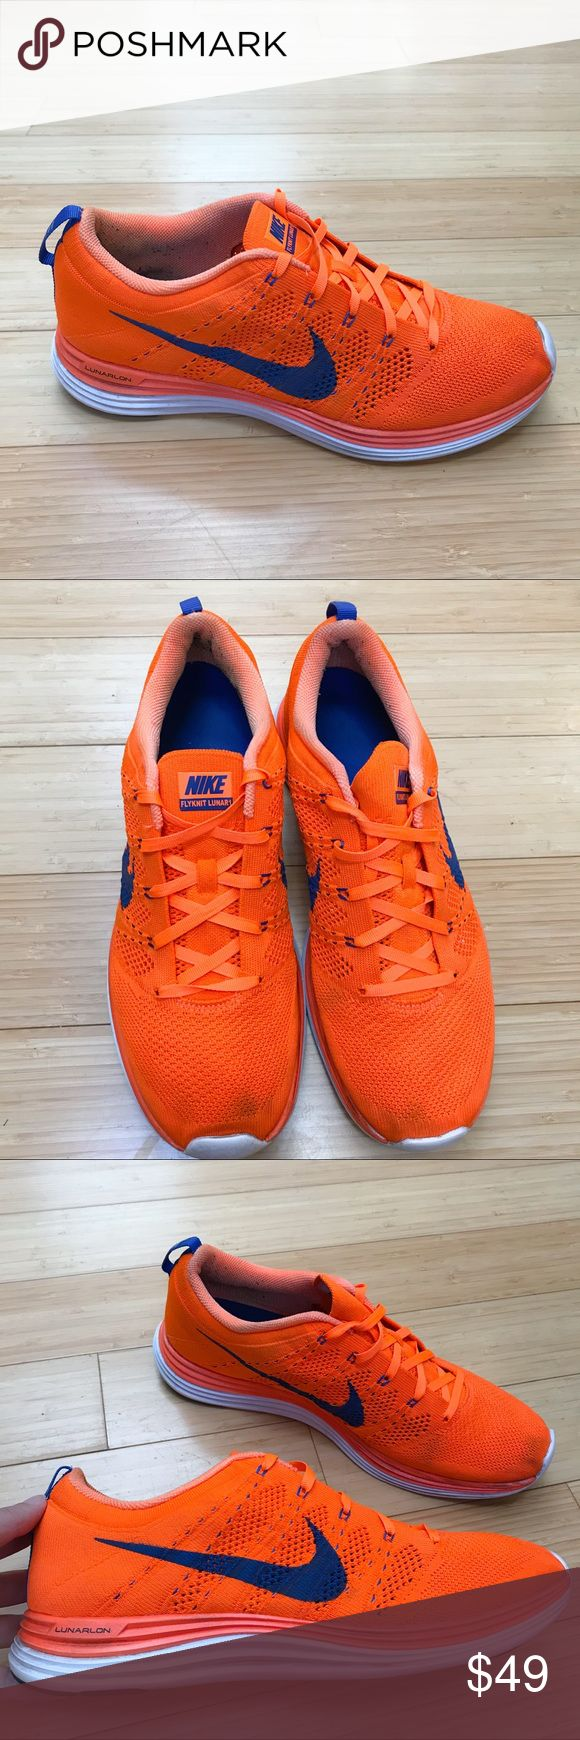 Mens NIKE Flyknit Lunar 1, 11. Men's orange and blue Nike Flyknit Lunar 1 total orange, size 11. Pre-loved but in generally good condition. There are some very light stains at the toes, and the soles are a bit dirty. Behind the heels there is some sock fuzz. Otherwise very good, very lightly used. Nike Shoes Sneakers